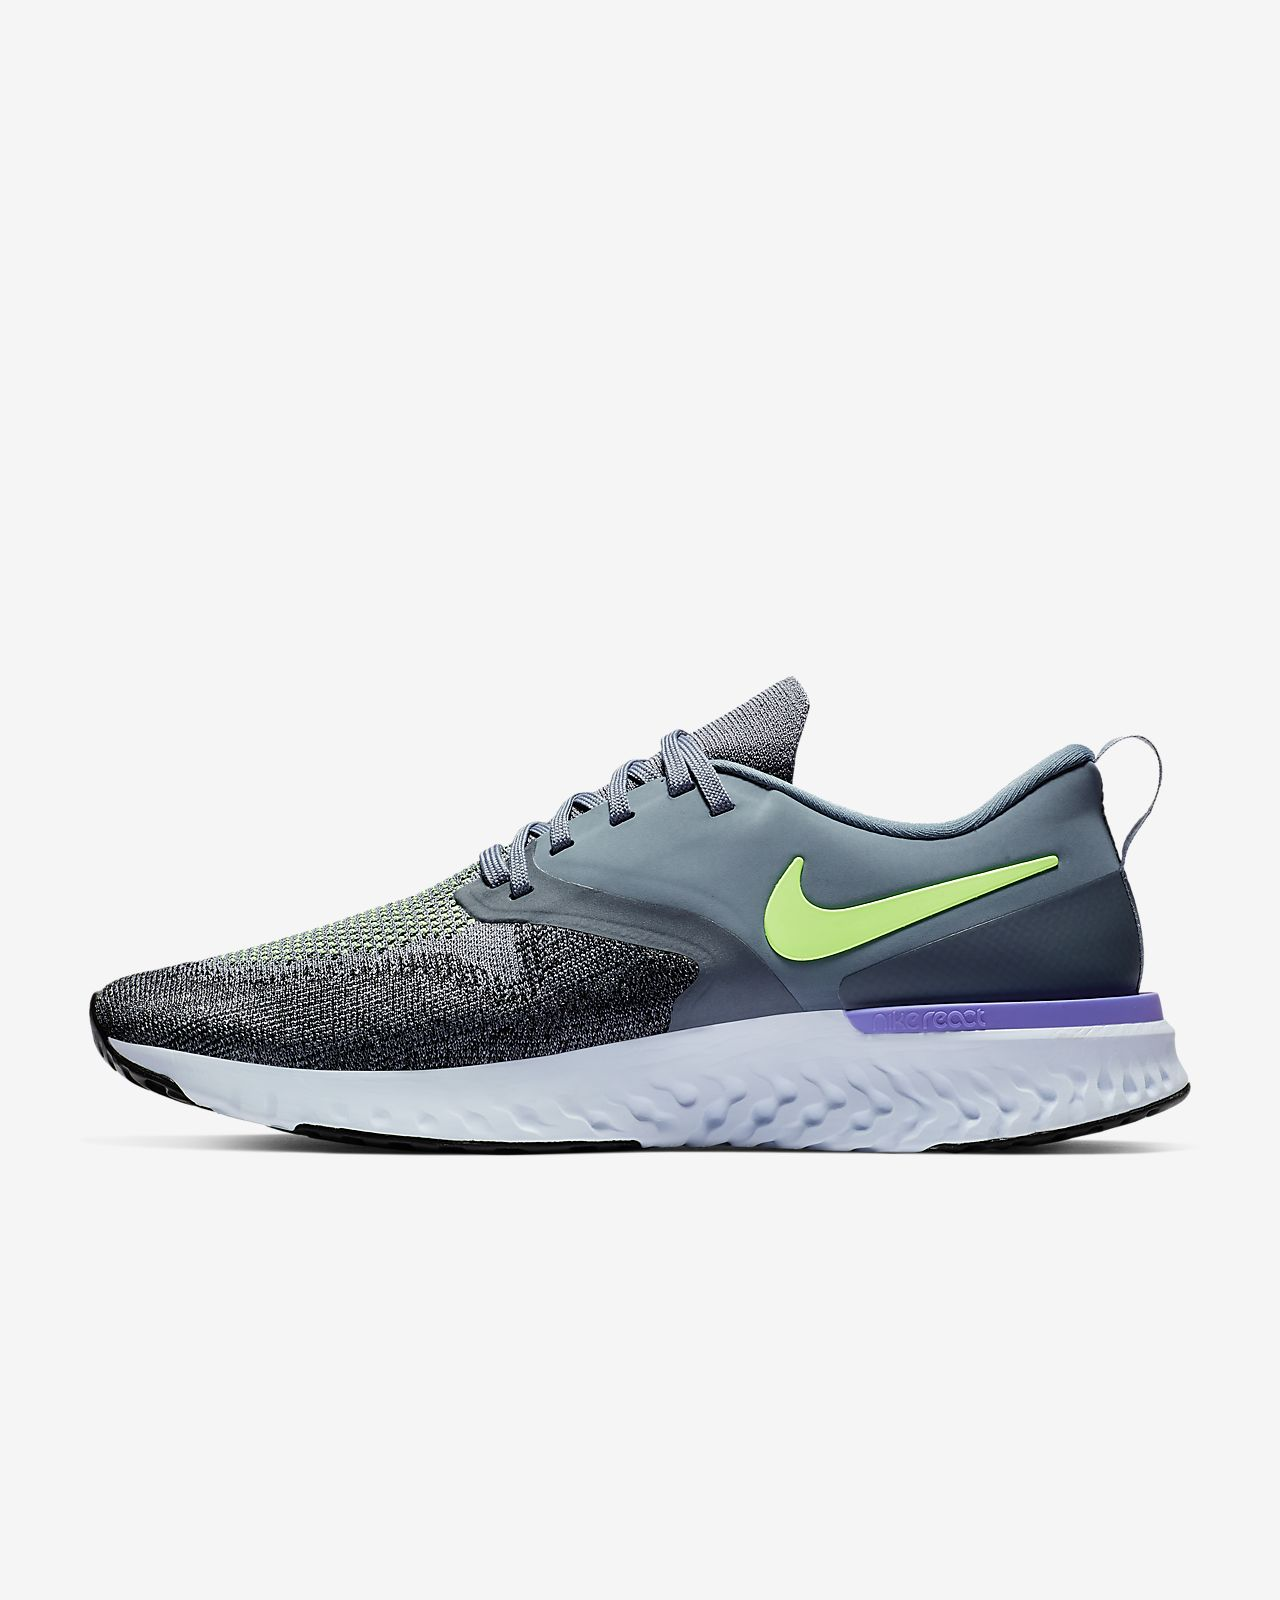 7266d96497e061 Nike Odyssey React Flyknit 2 Men s Running Shoe. Nike.com IN